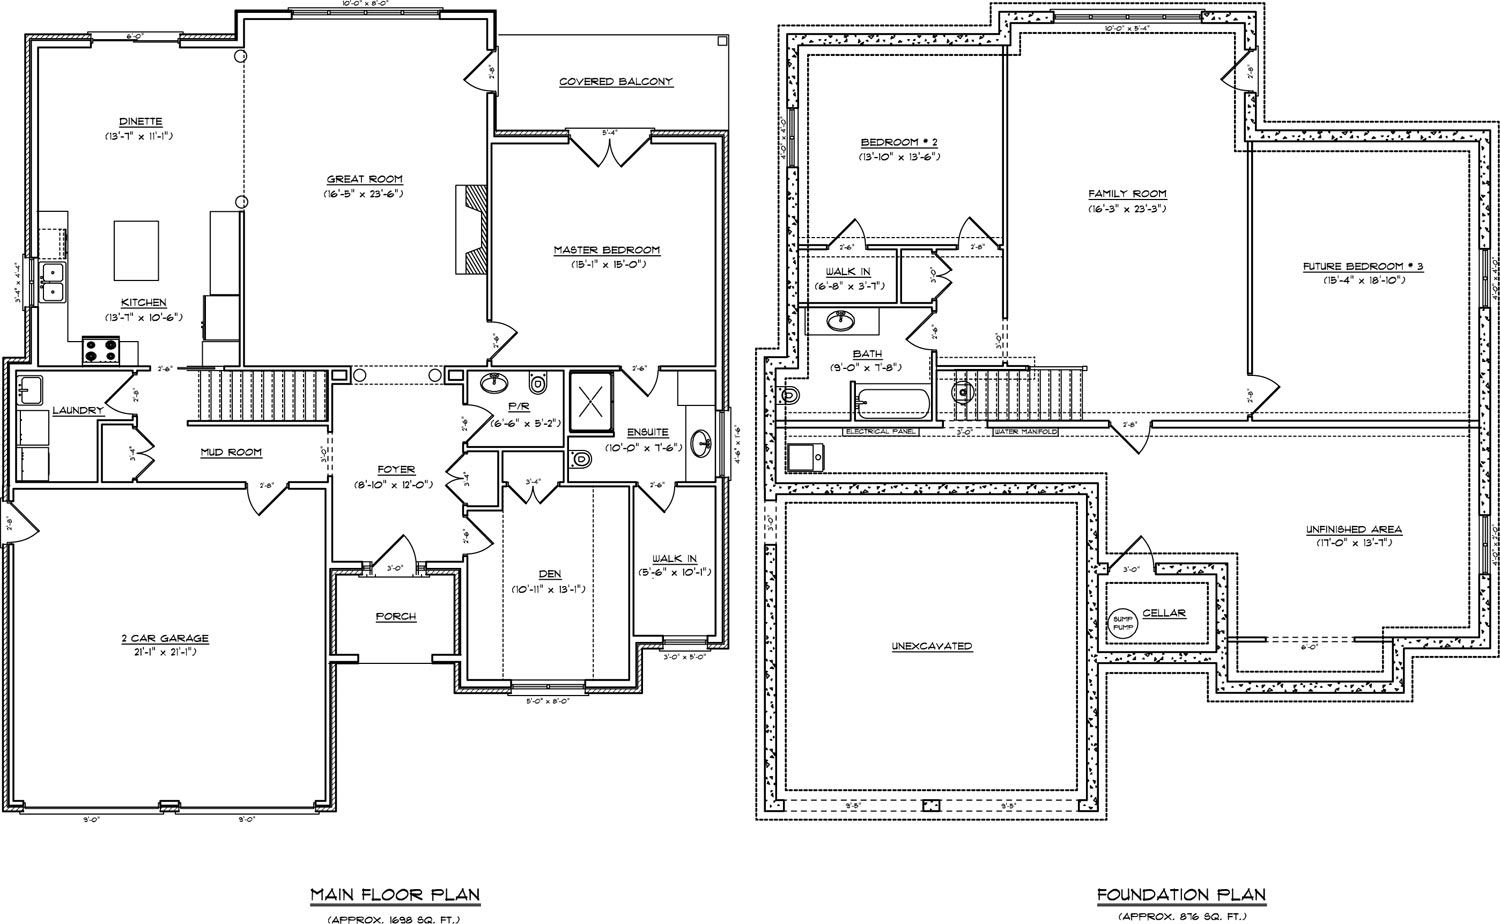 Joyous 4 Bedroom House Plans One Story With Basement Three Home 3 Houses At Eplanscom Gorgeous Gla Basement House Plans Porch House Plans One Level House Plans